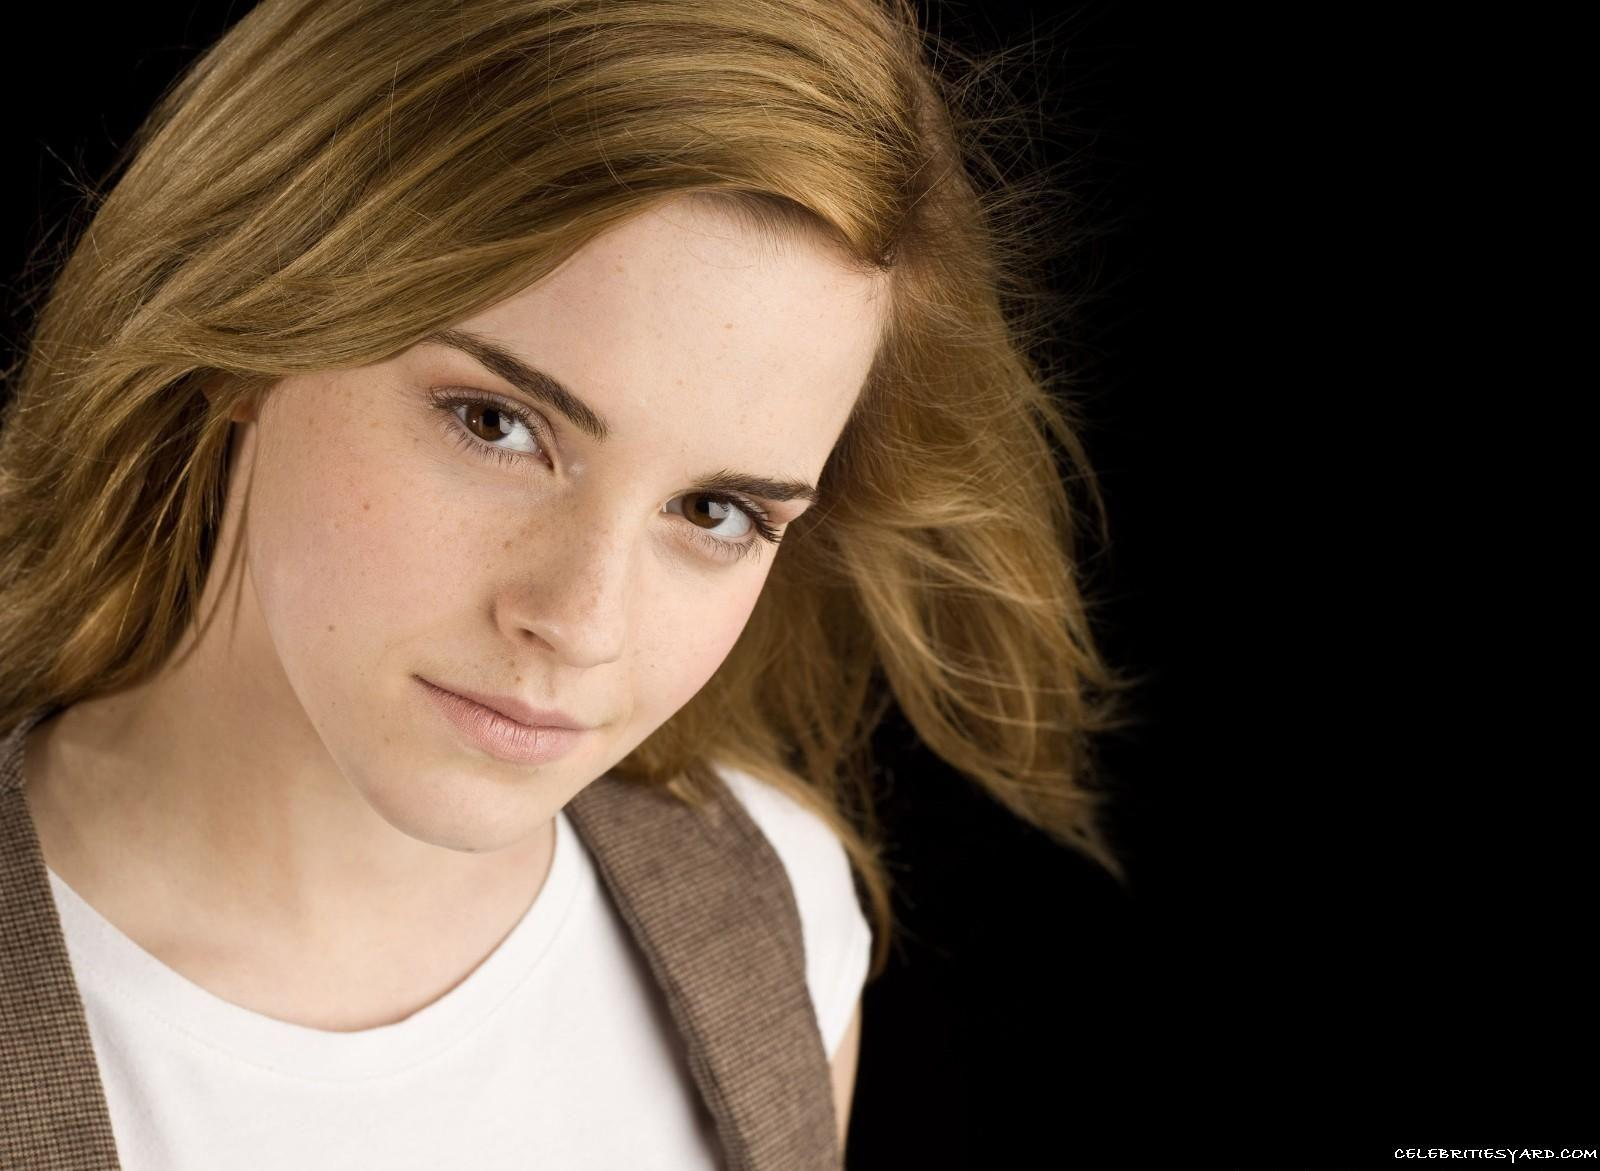 Emma Watson Latest HD Wallpapers - HD Wallpapers Inn